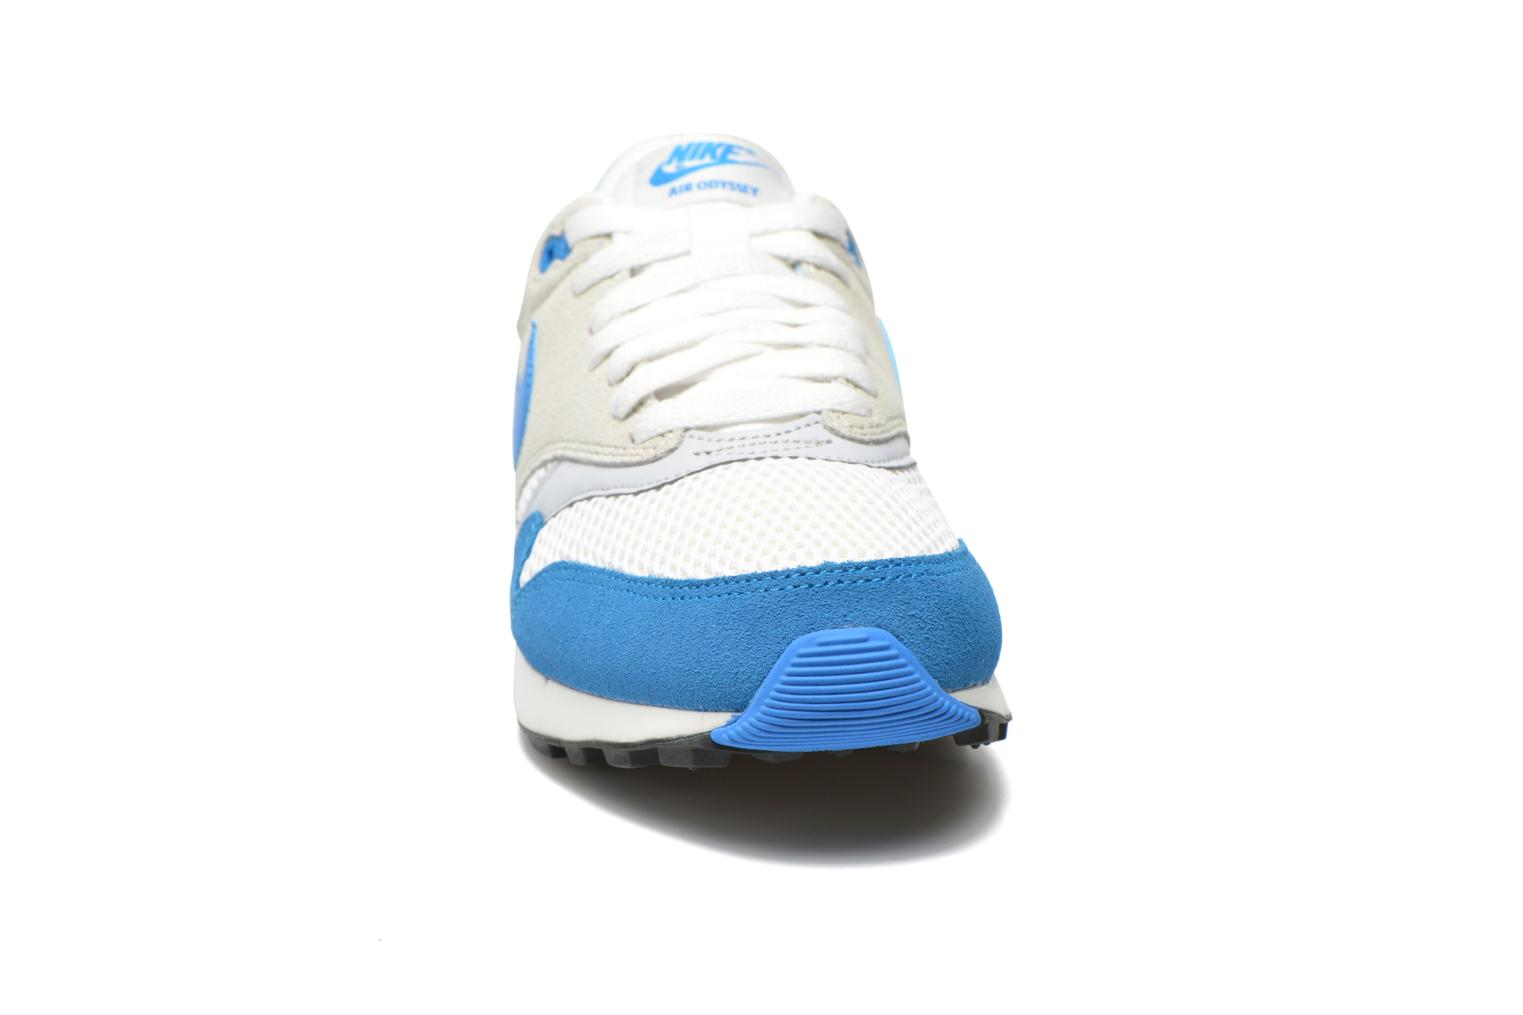 Nike Air Odyssey Photo Blue/Pht Bl-Smmt Wht-Sl